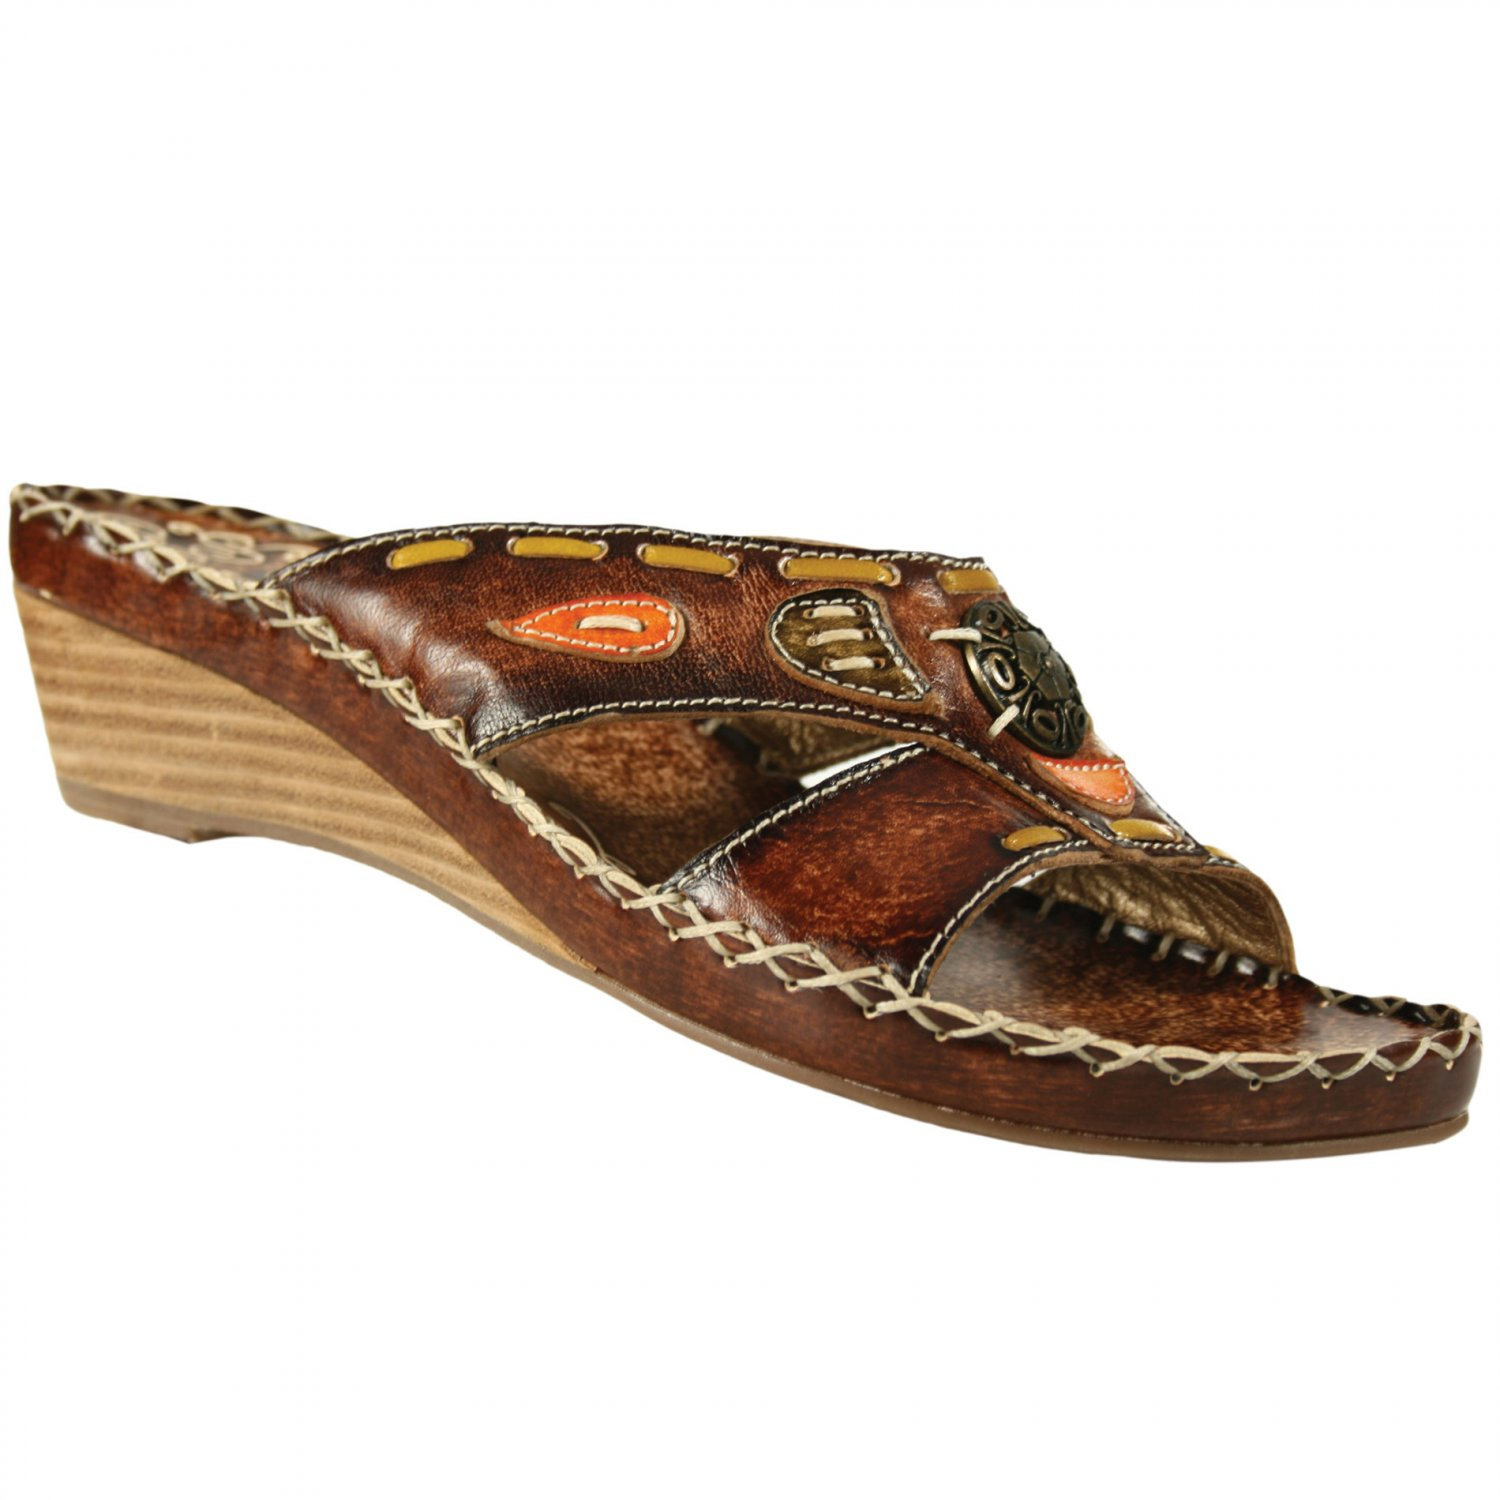 Spring Step CLOVES Sandals Shoes All Sizes & Colors $6